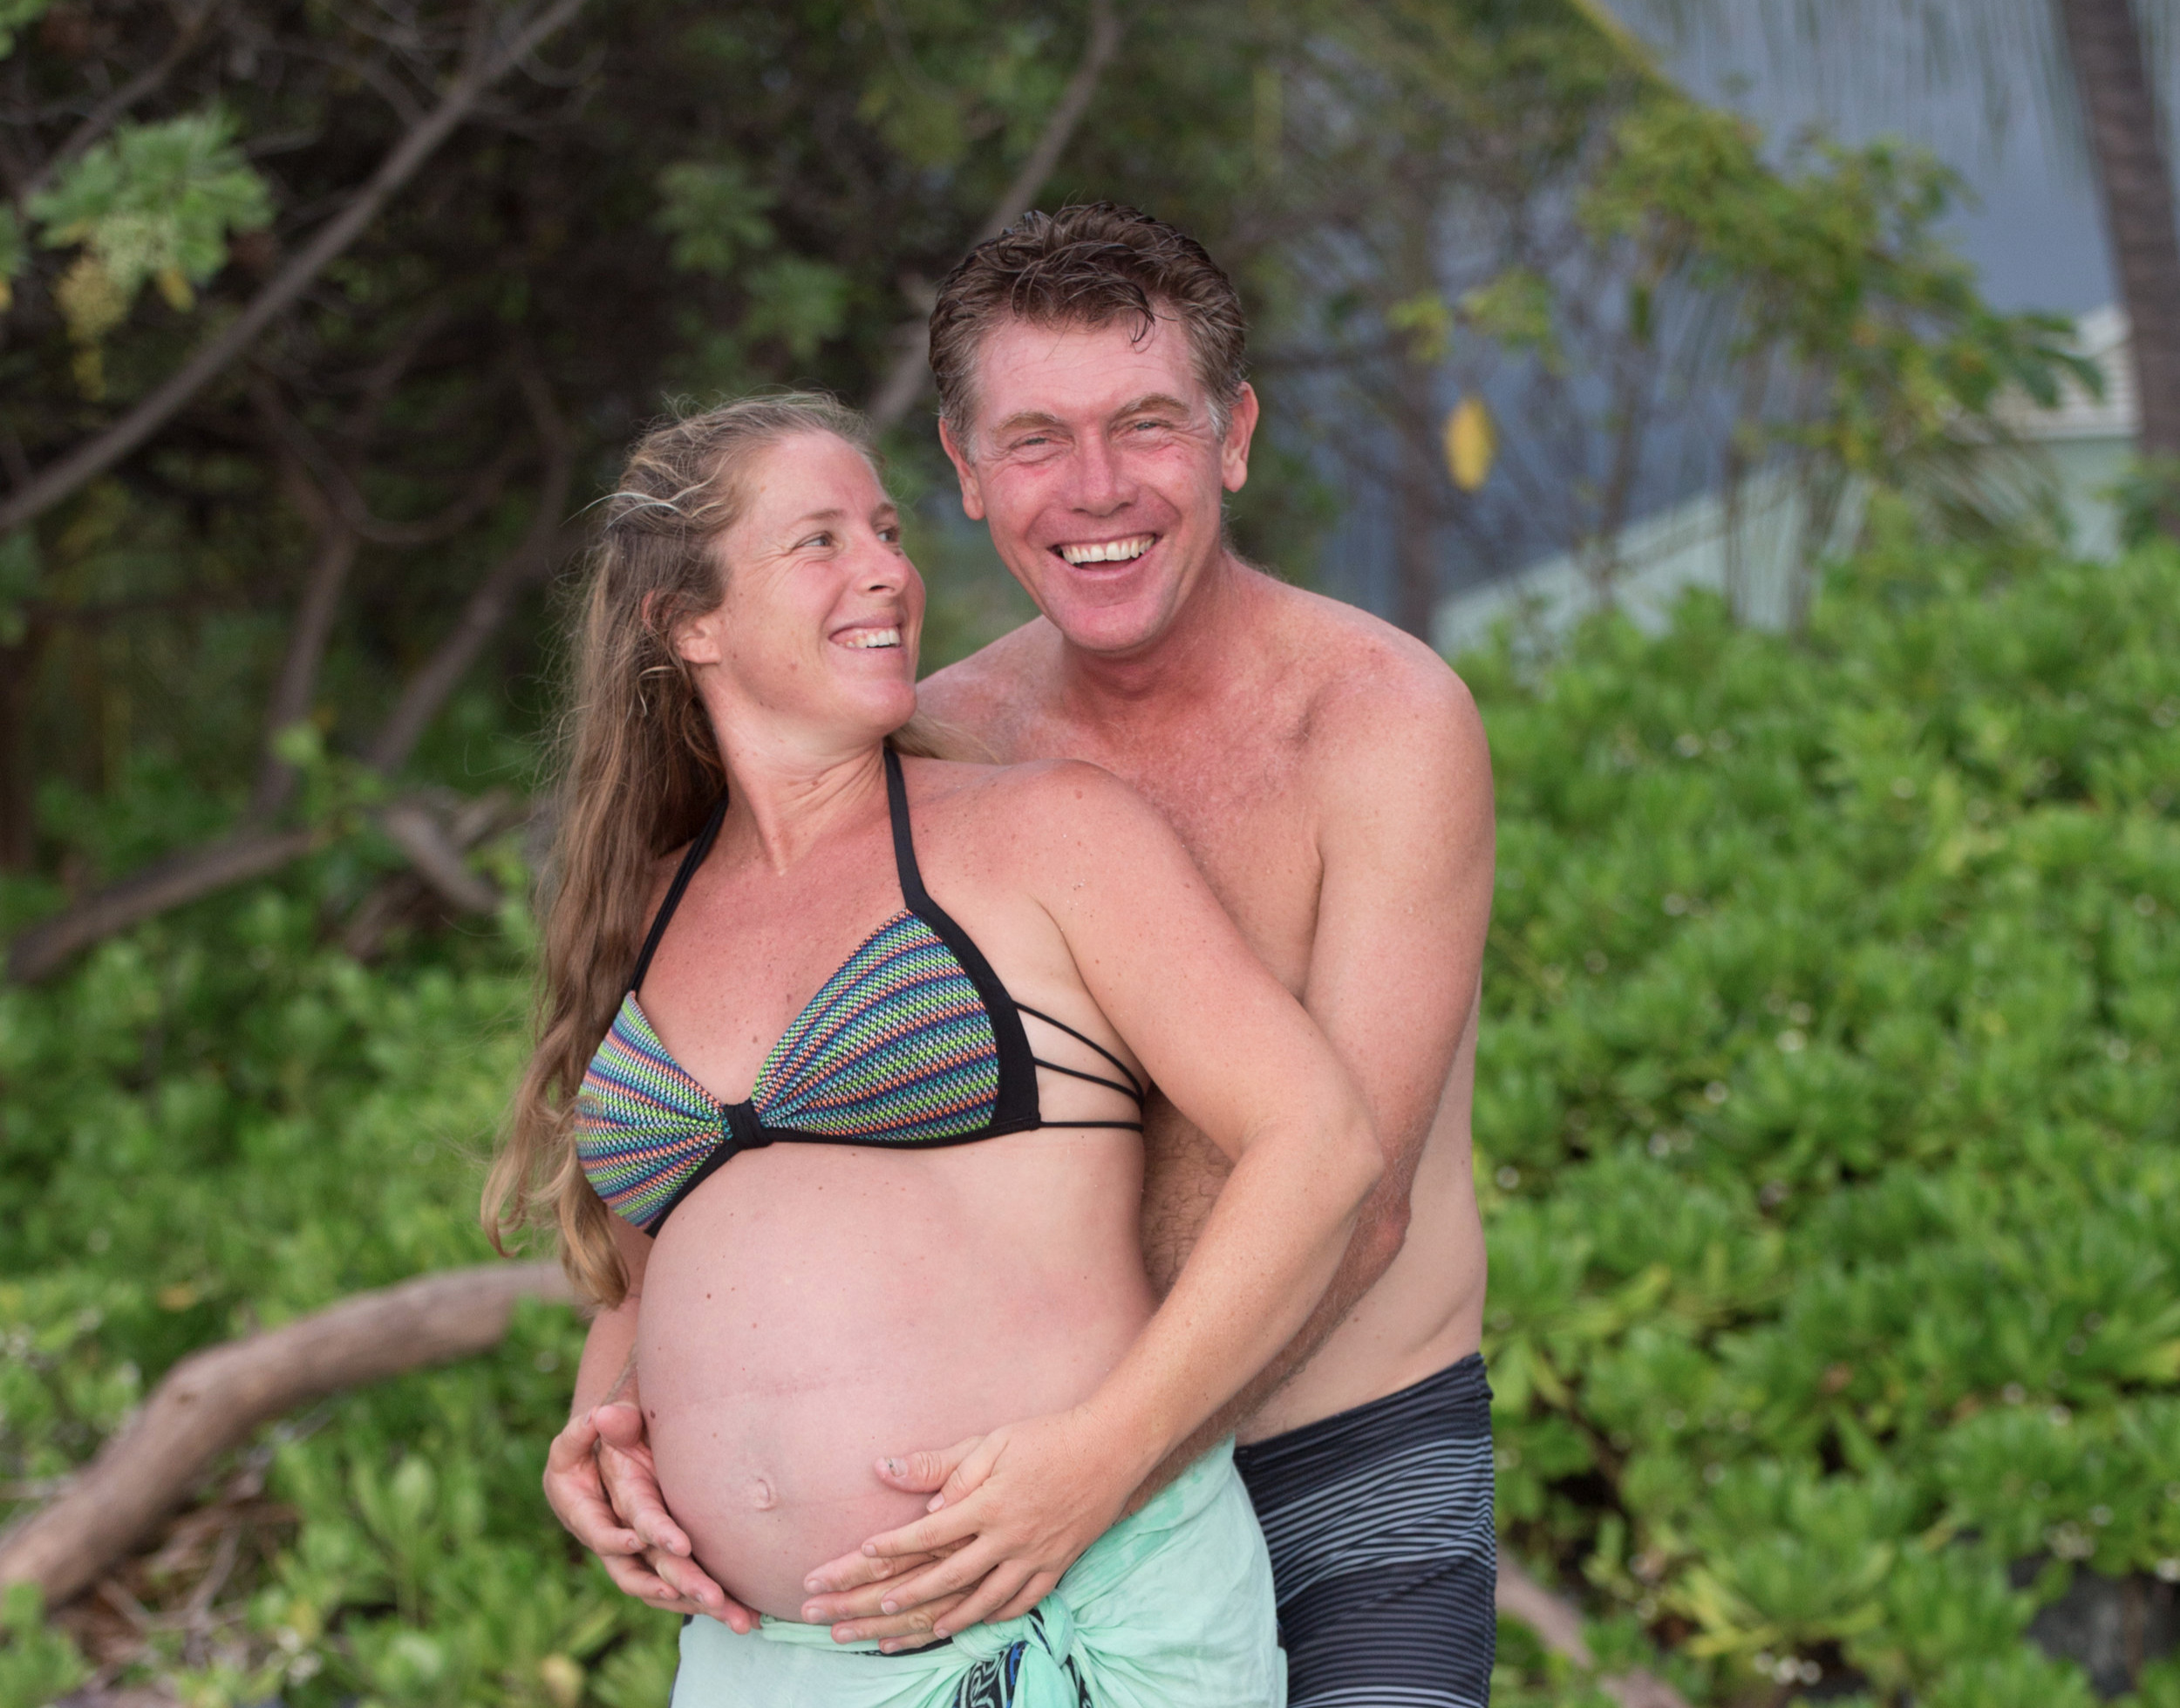 relax. unplug. let go - Pregnancy Couples Retreats